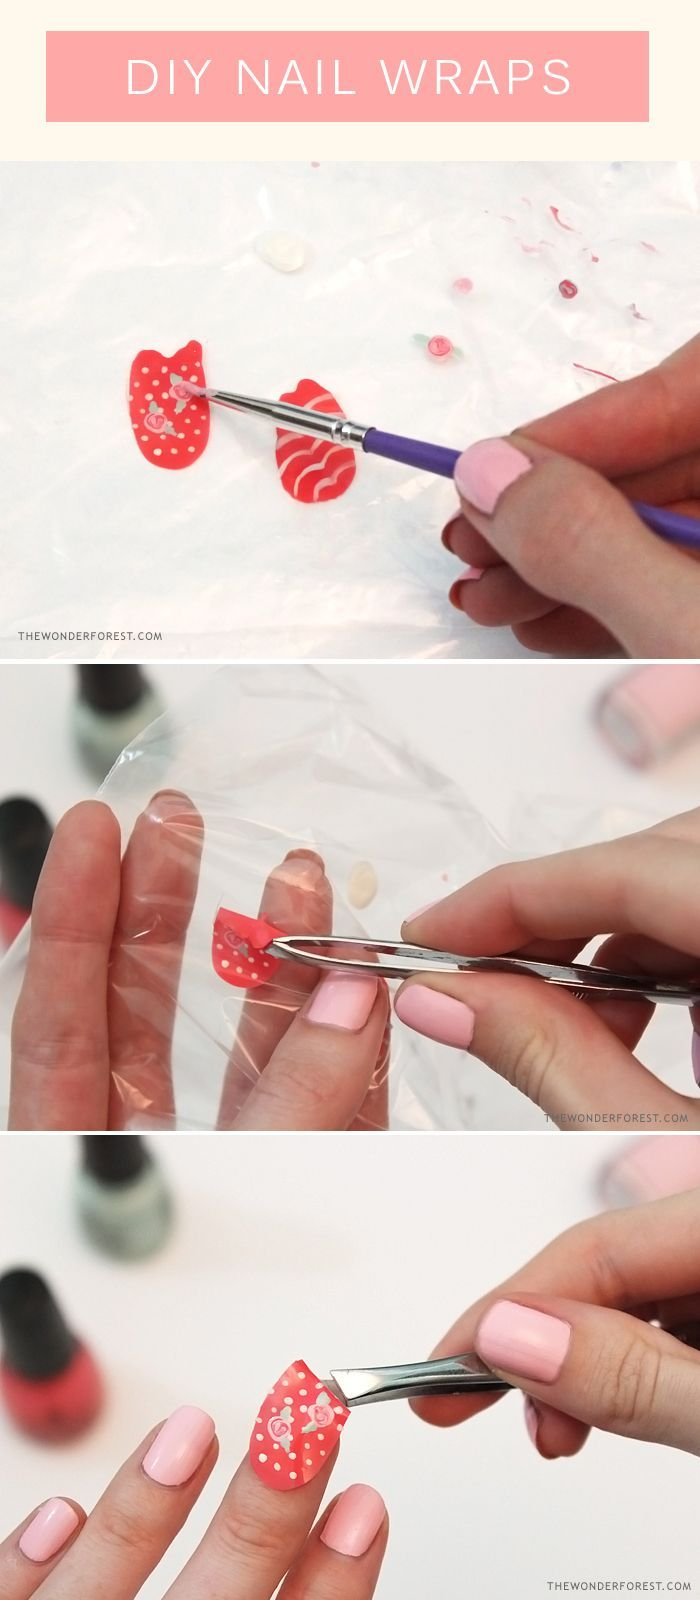 Make Your Own Nail Wraps With Polish No More Wonky Wrong Handed Art